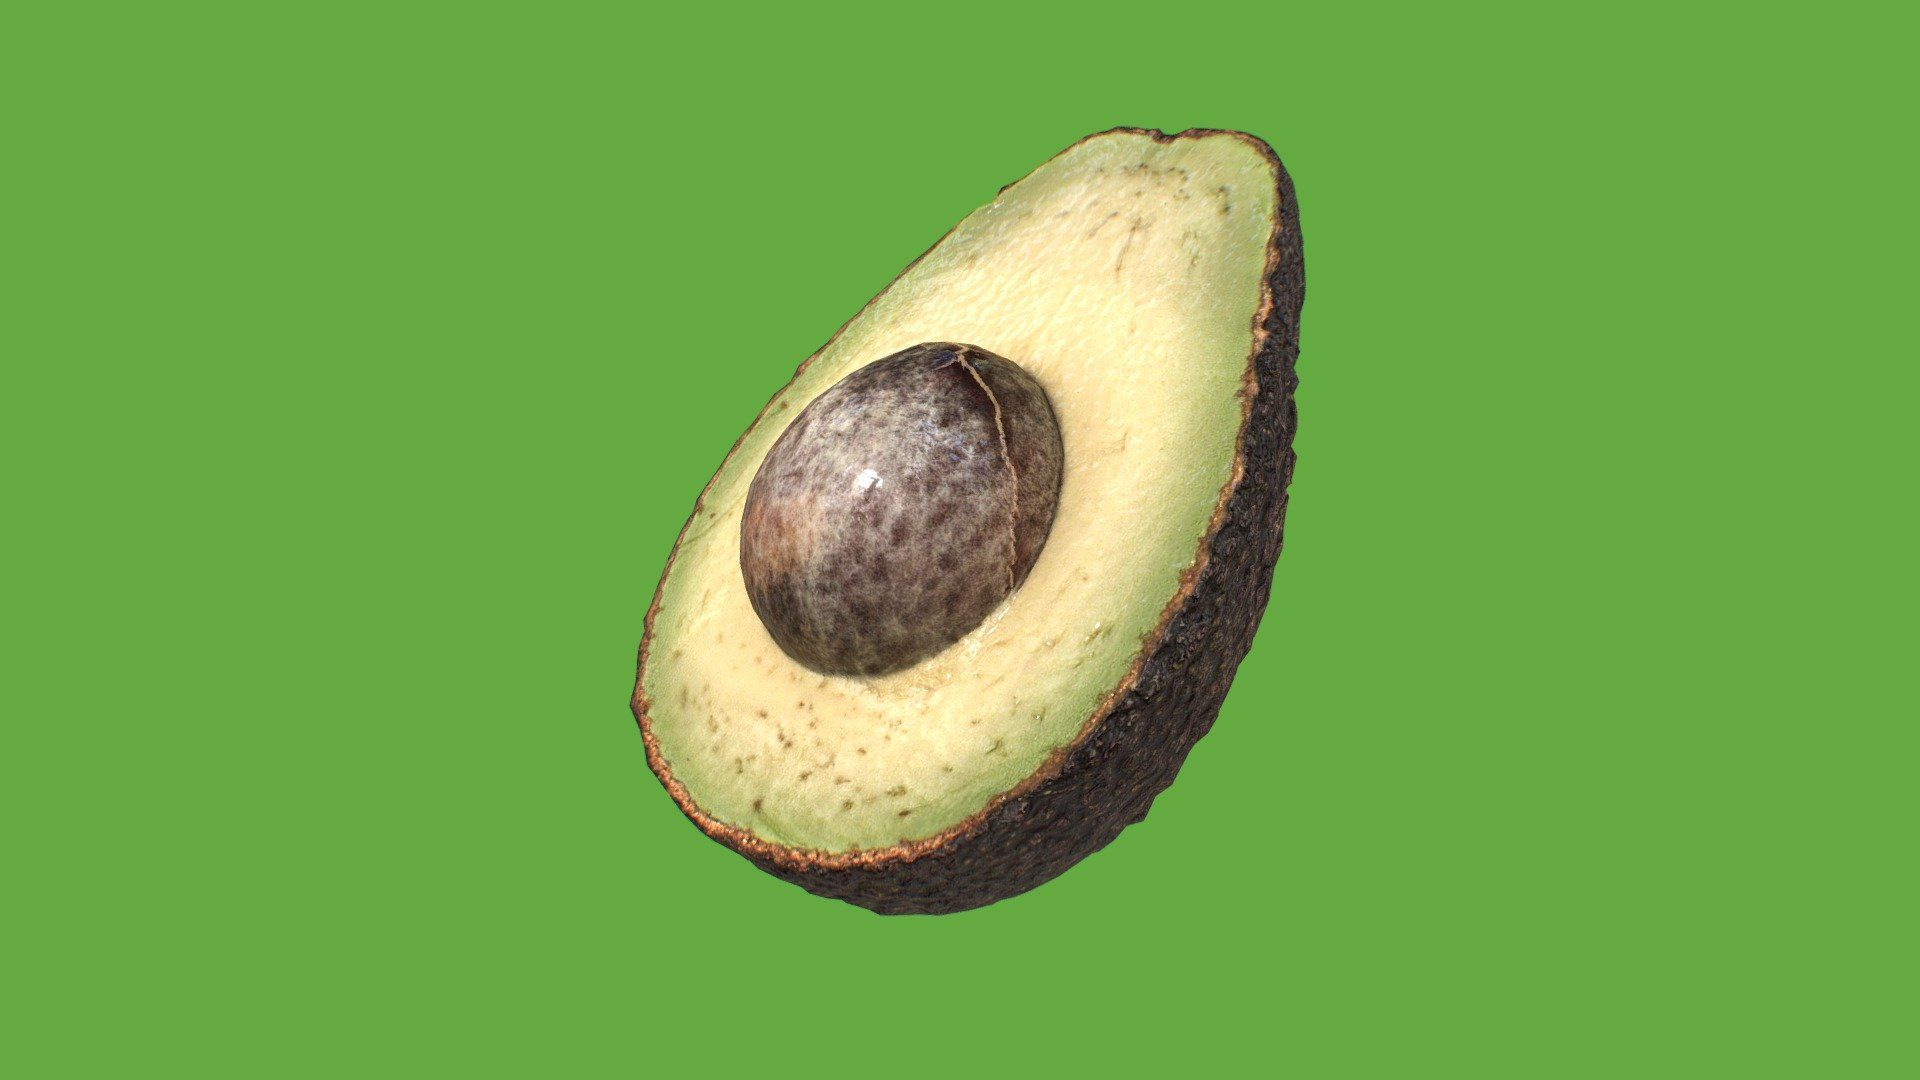 Avocado laptop wallpaper